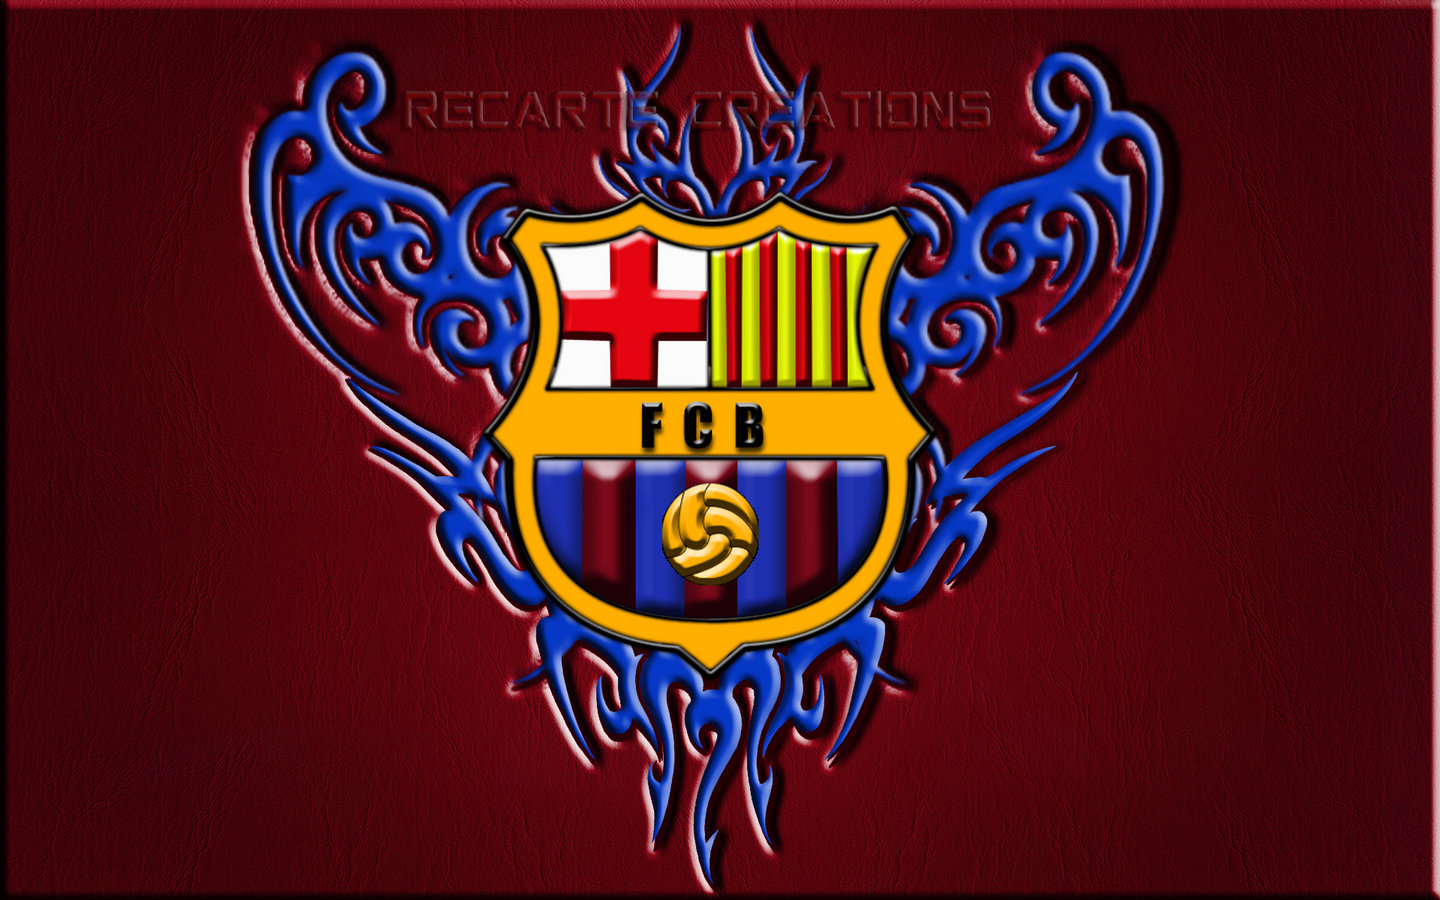 Wallpaper Fcb 2012 New Hd Wallon